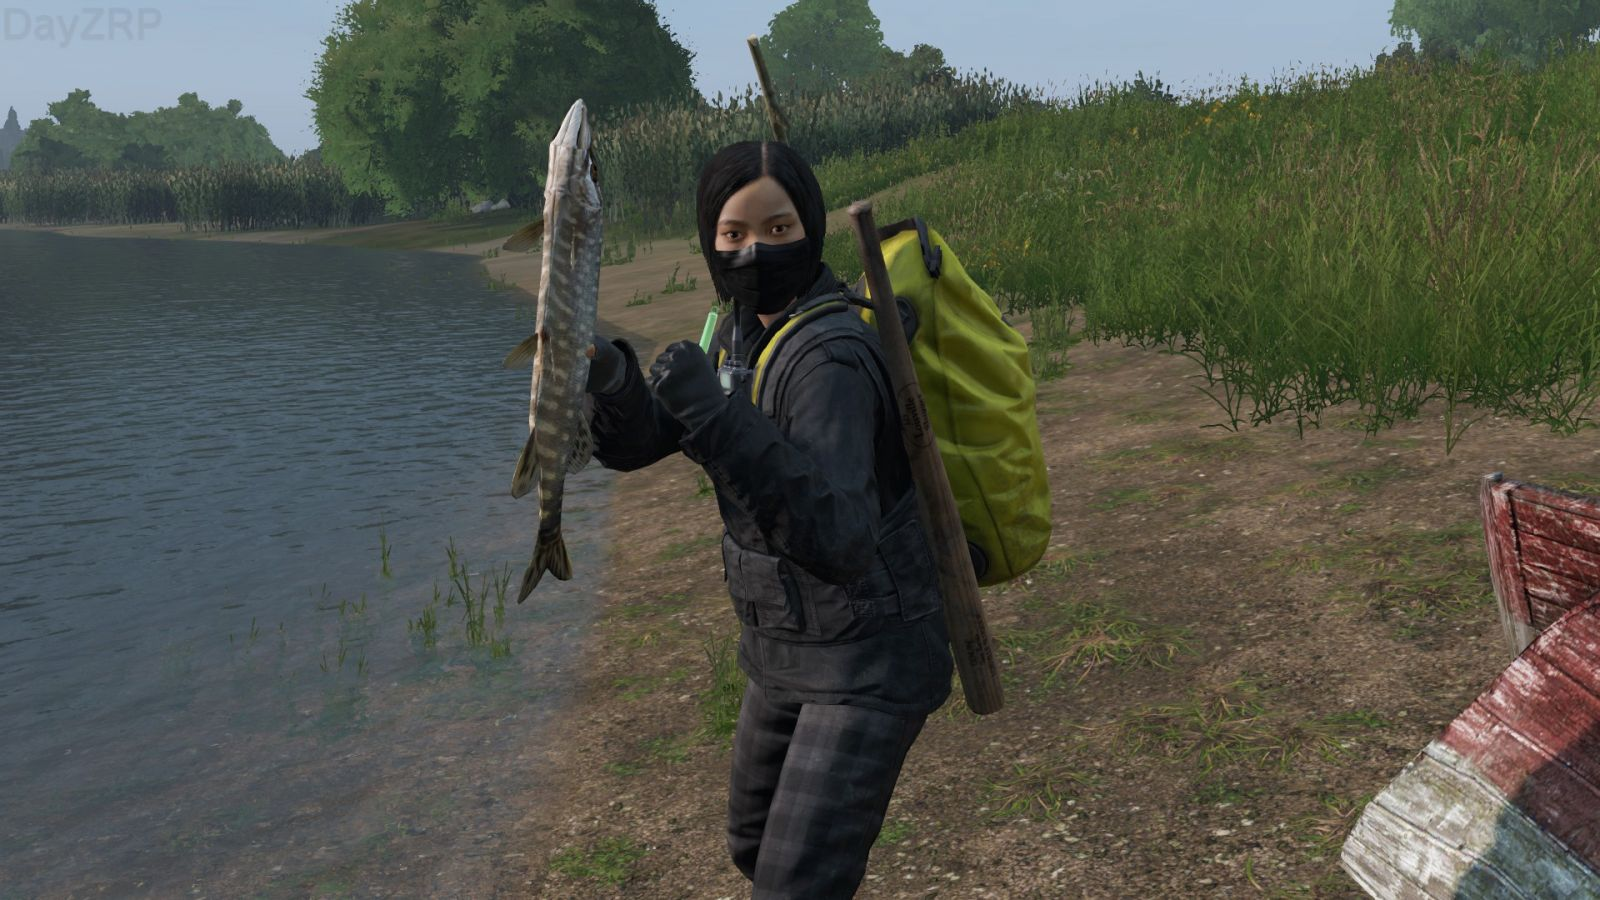 '' LOOK JERRY! I CAUGHT ONE!! ''